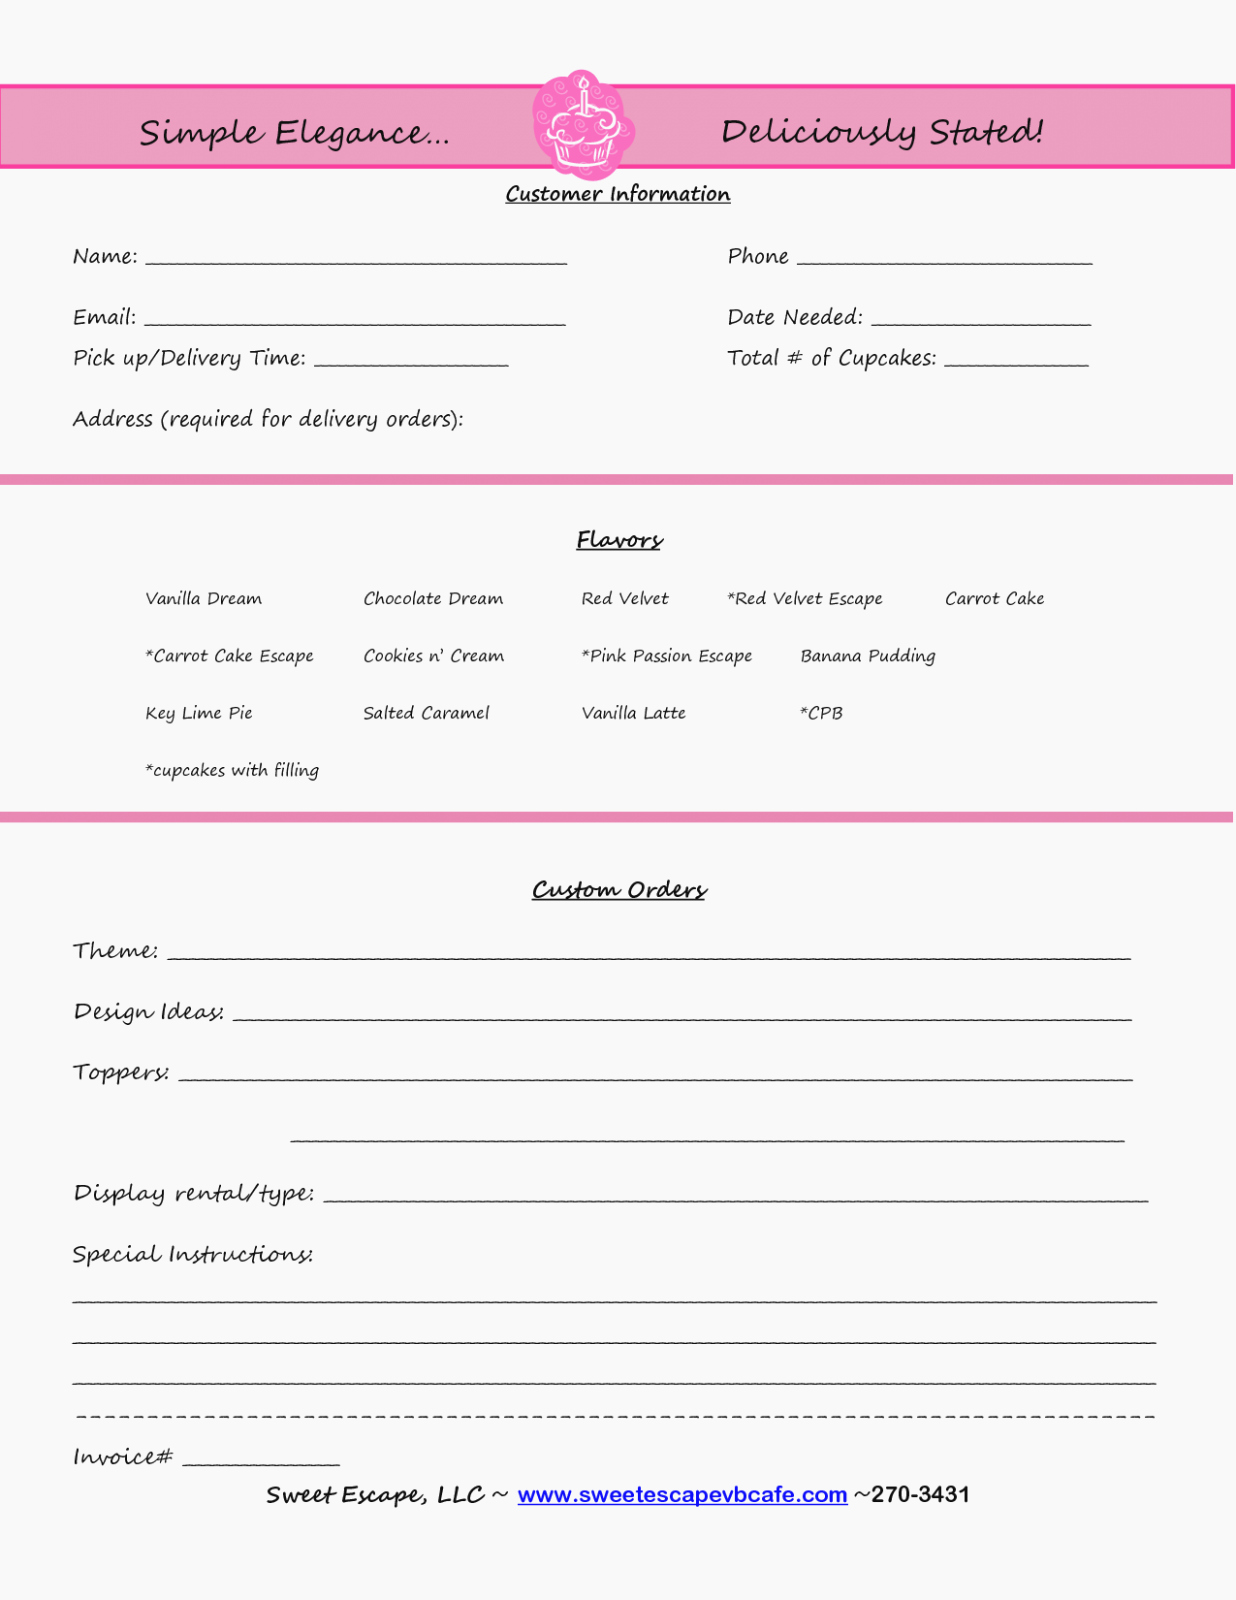 Bakery order form Template Free Luxury How You Can attend Baking